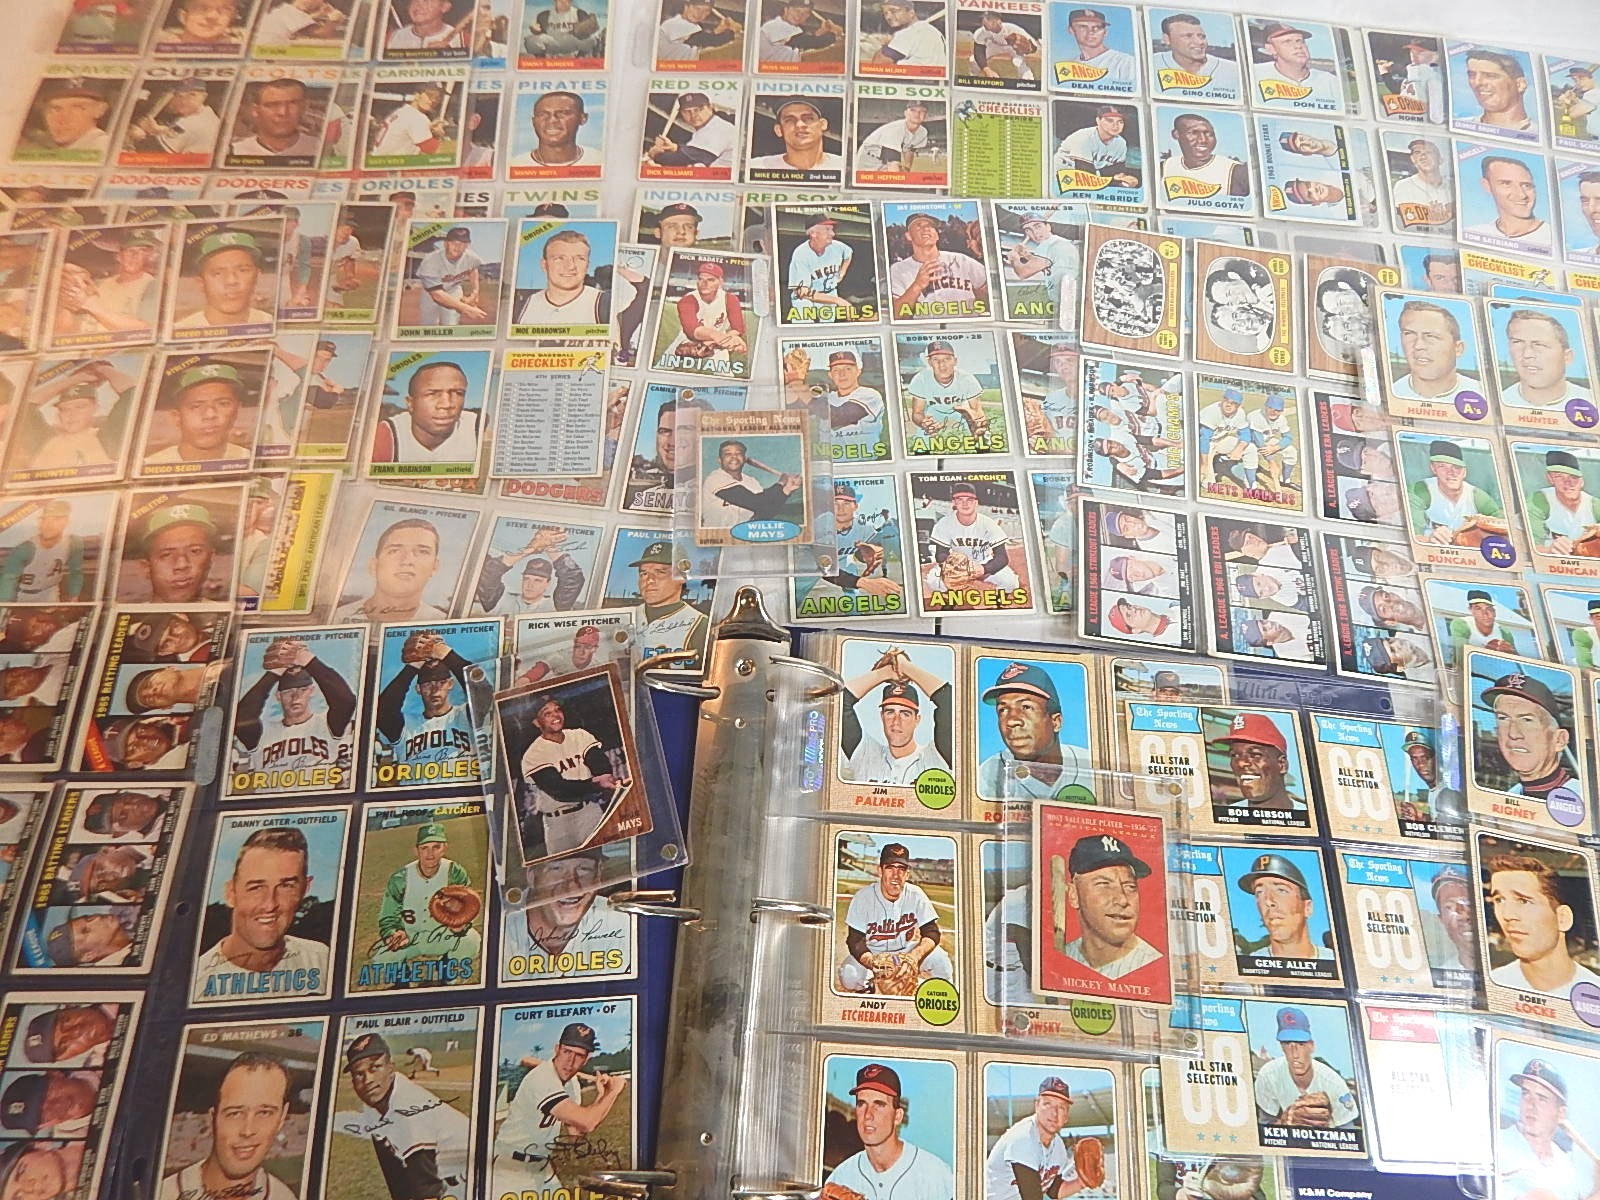 Large 1960s Topps Baseball Card Collection in Album - Mantle, Clemente, Mays